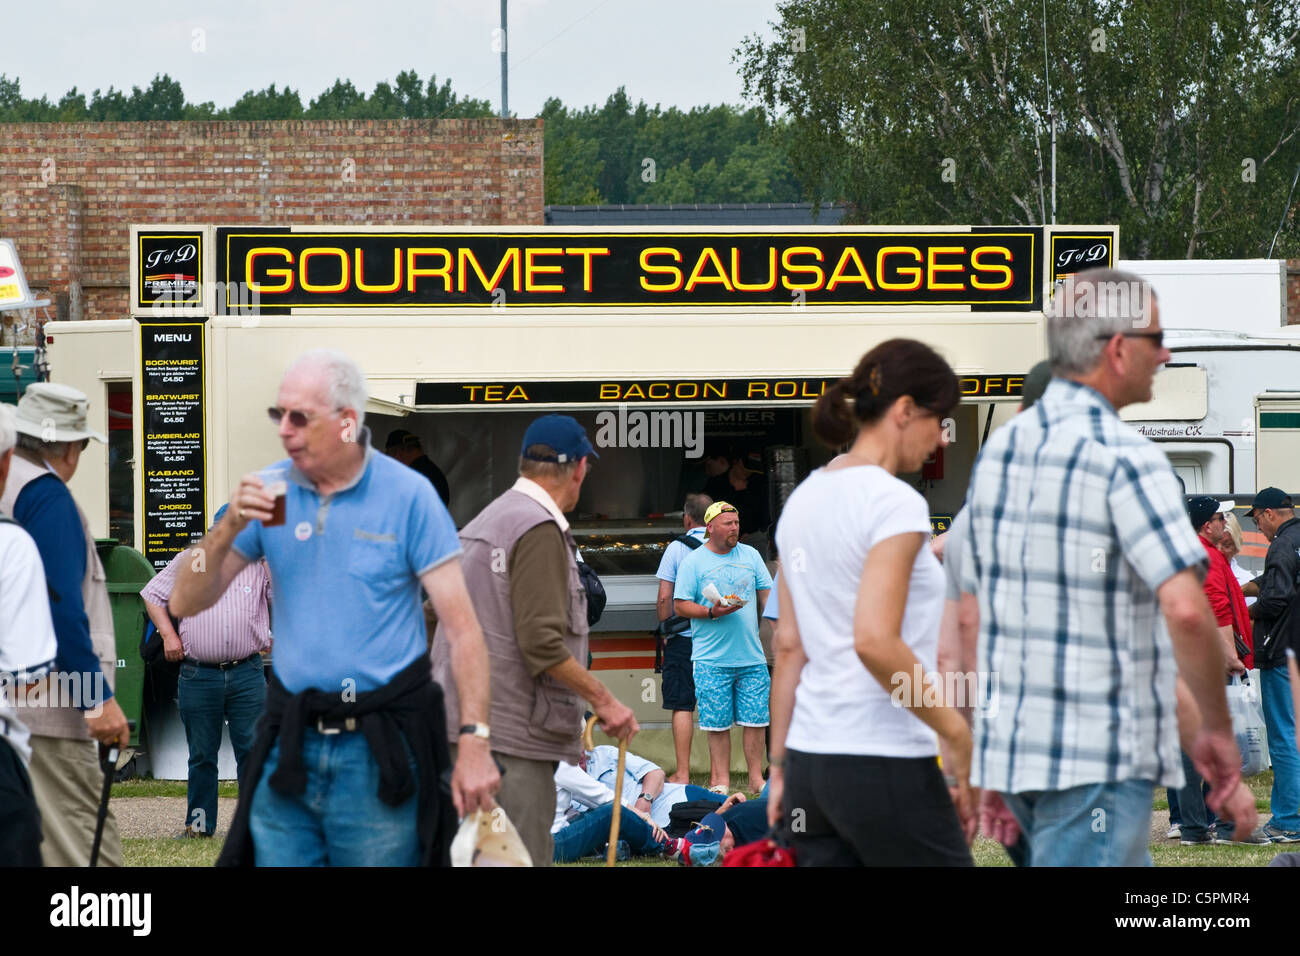 Gourmet Sausage trailer at a public event - Stock Image